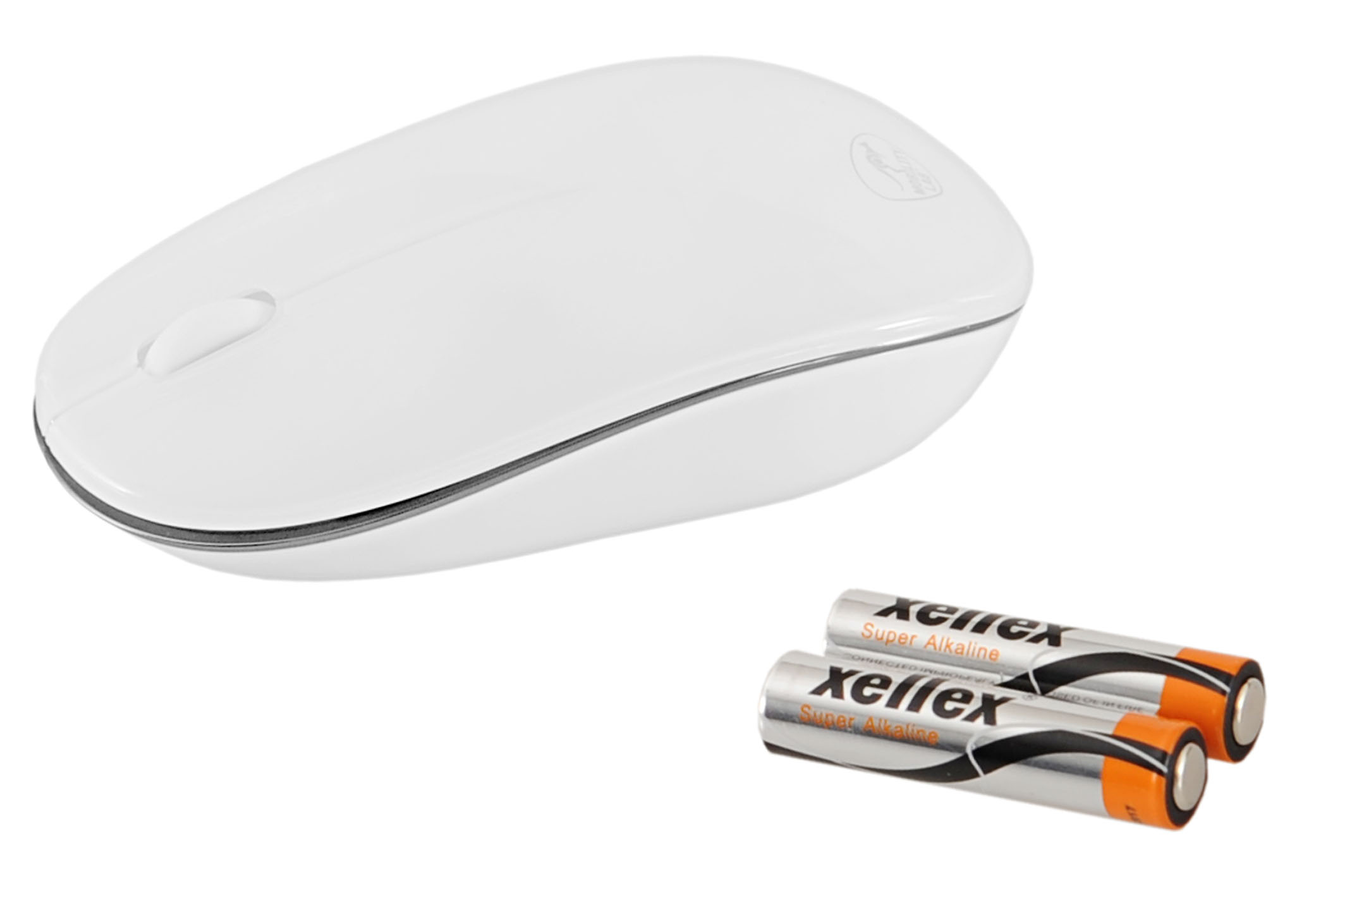 Usb mouse for mac pro 12.9